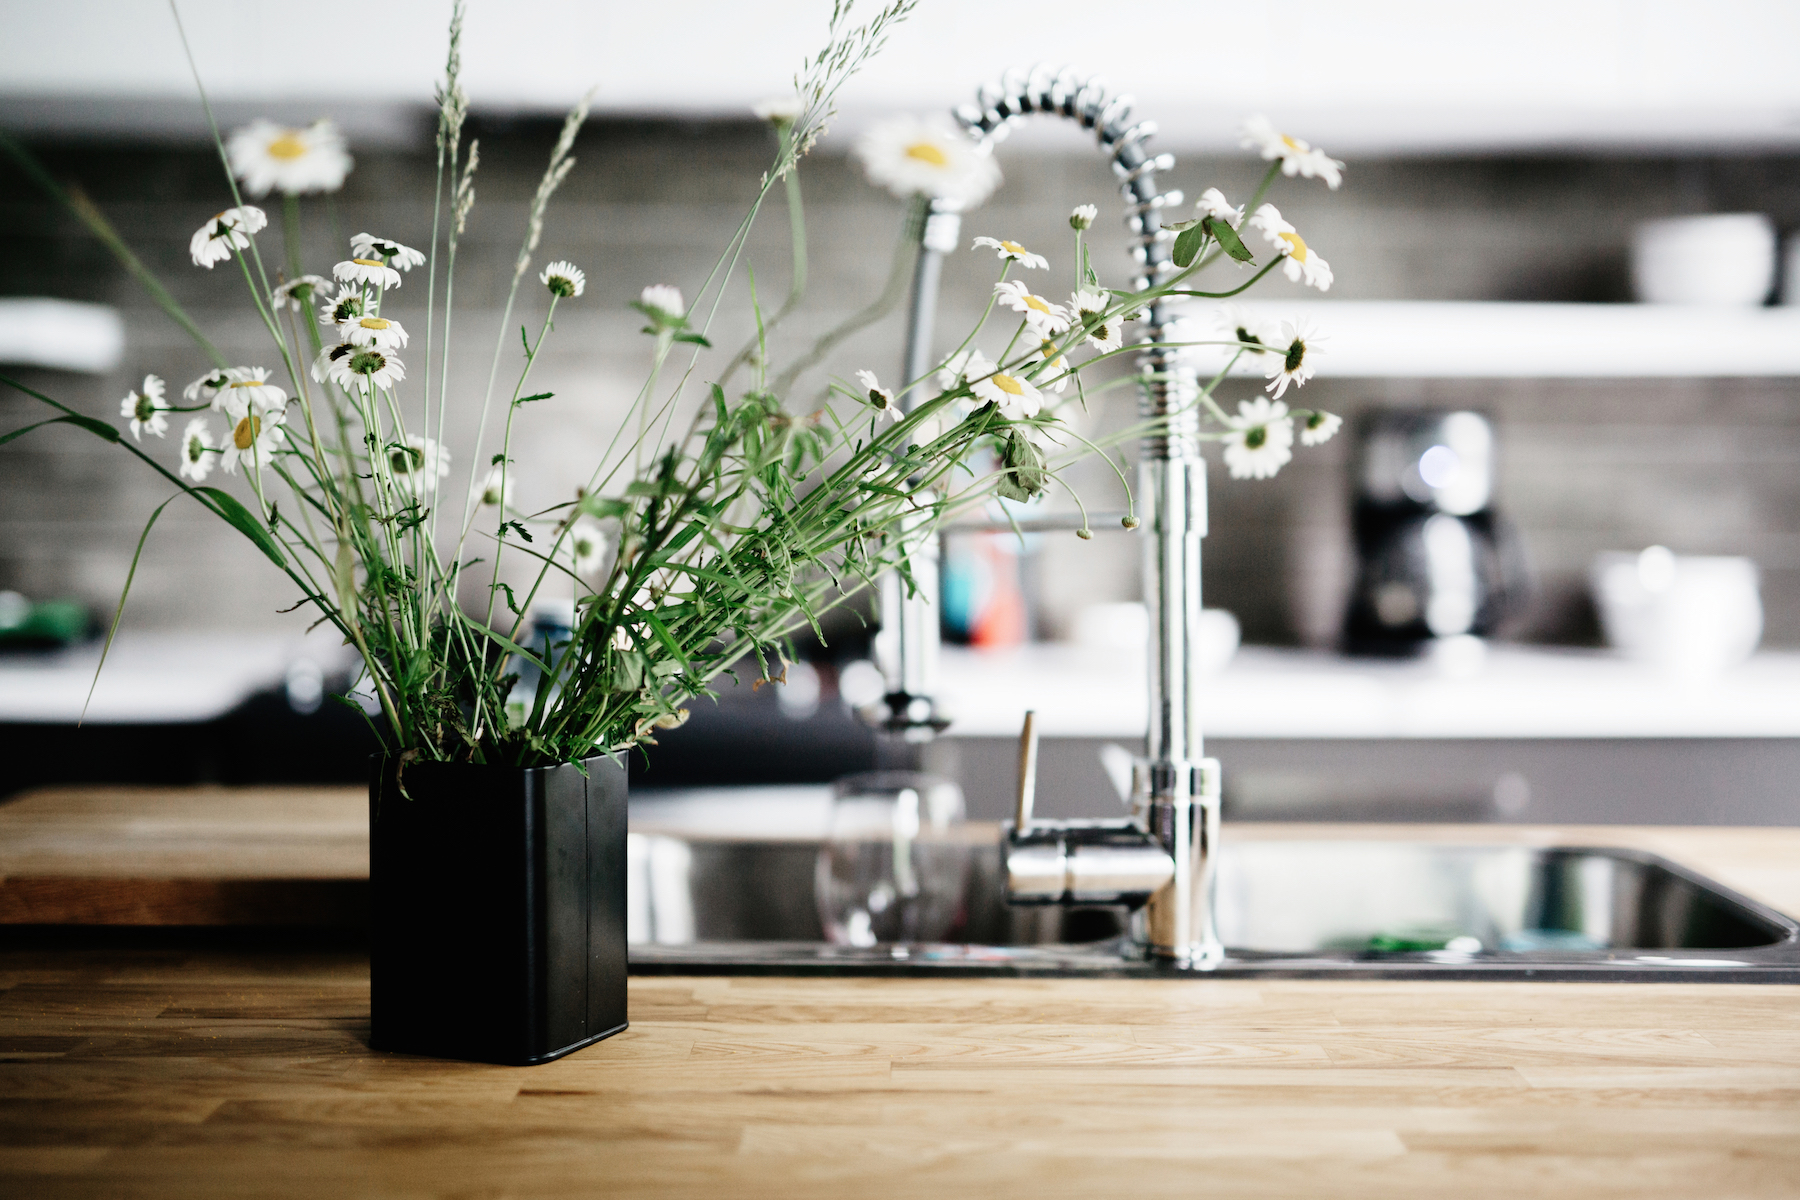 How to Combat Every Stinky Spot in Your House | Real Simple Ze House Plant on house vines, house stars, house home, house slugs, house chemicals, house gifts, house design, house ferns, house flowers, house crafts, house decorations, house nature, house plans, house fire, house people, house rodents, house candy, house mites, house cars, house family,